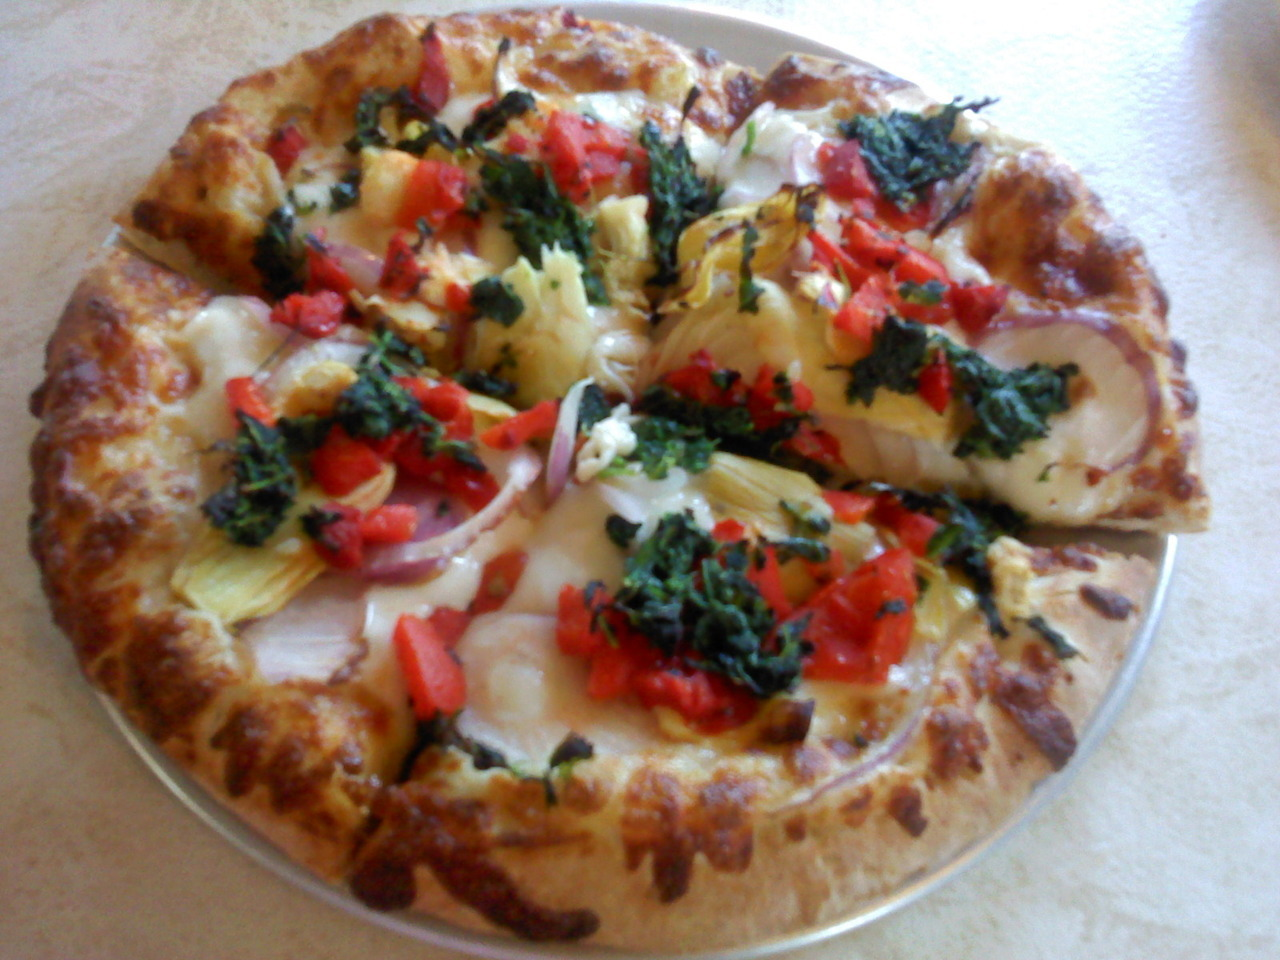 hippie pizza!hummus. artichokes. red peppers. spinach. red onions. (pizza all day every day. nom.)